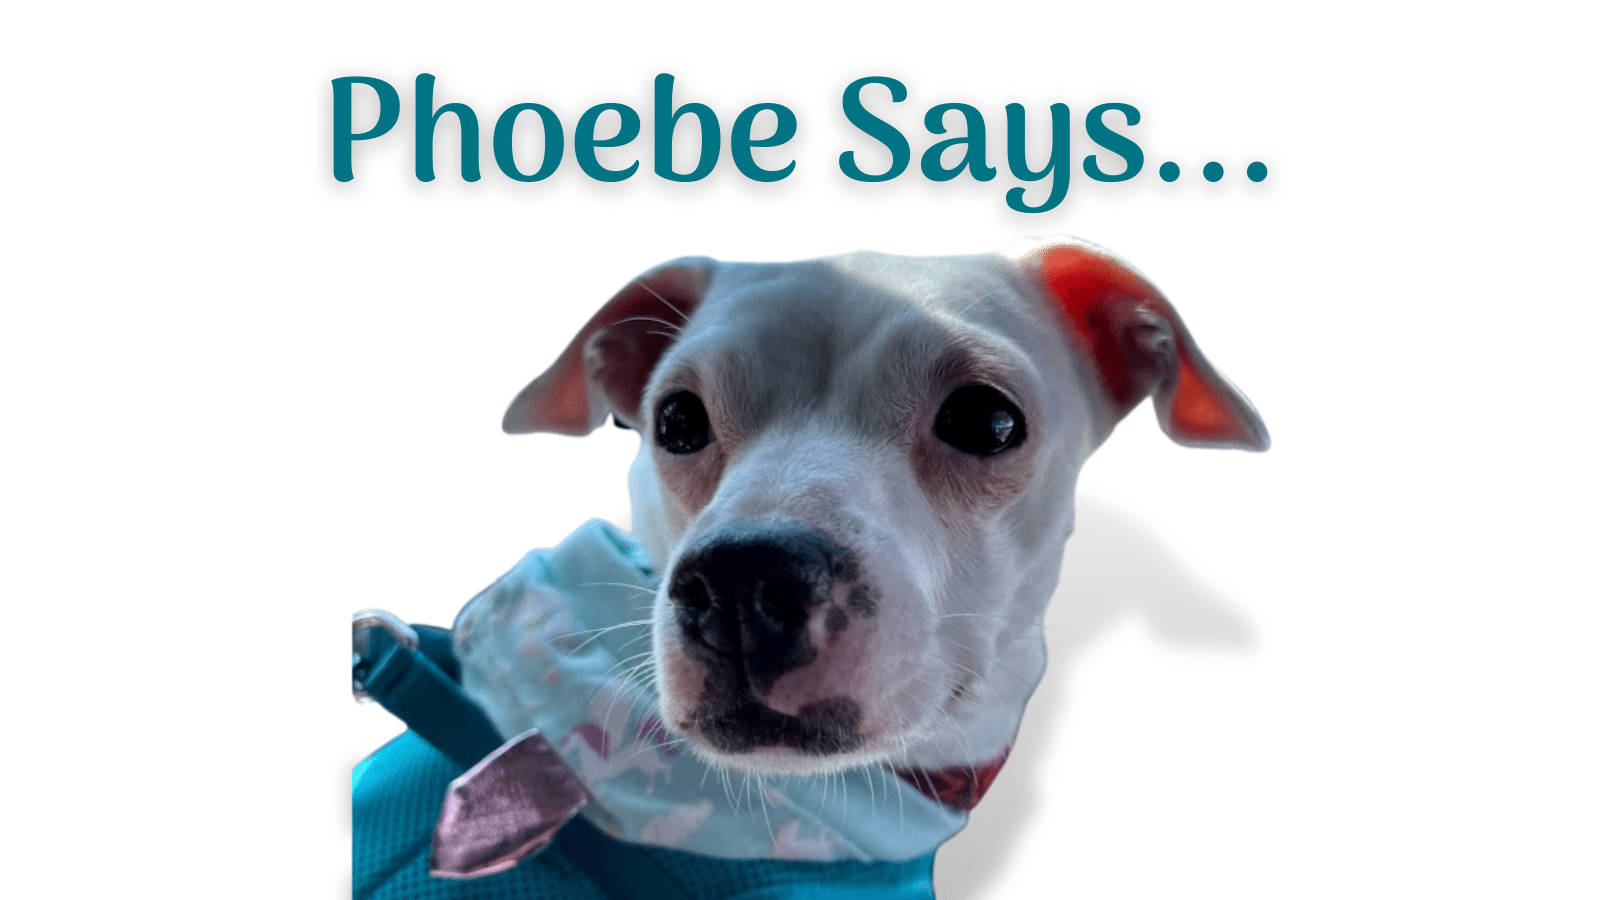 Phoebe Says … Engage With Your Audience on Social Media